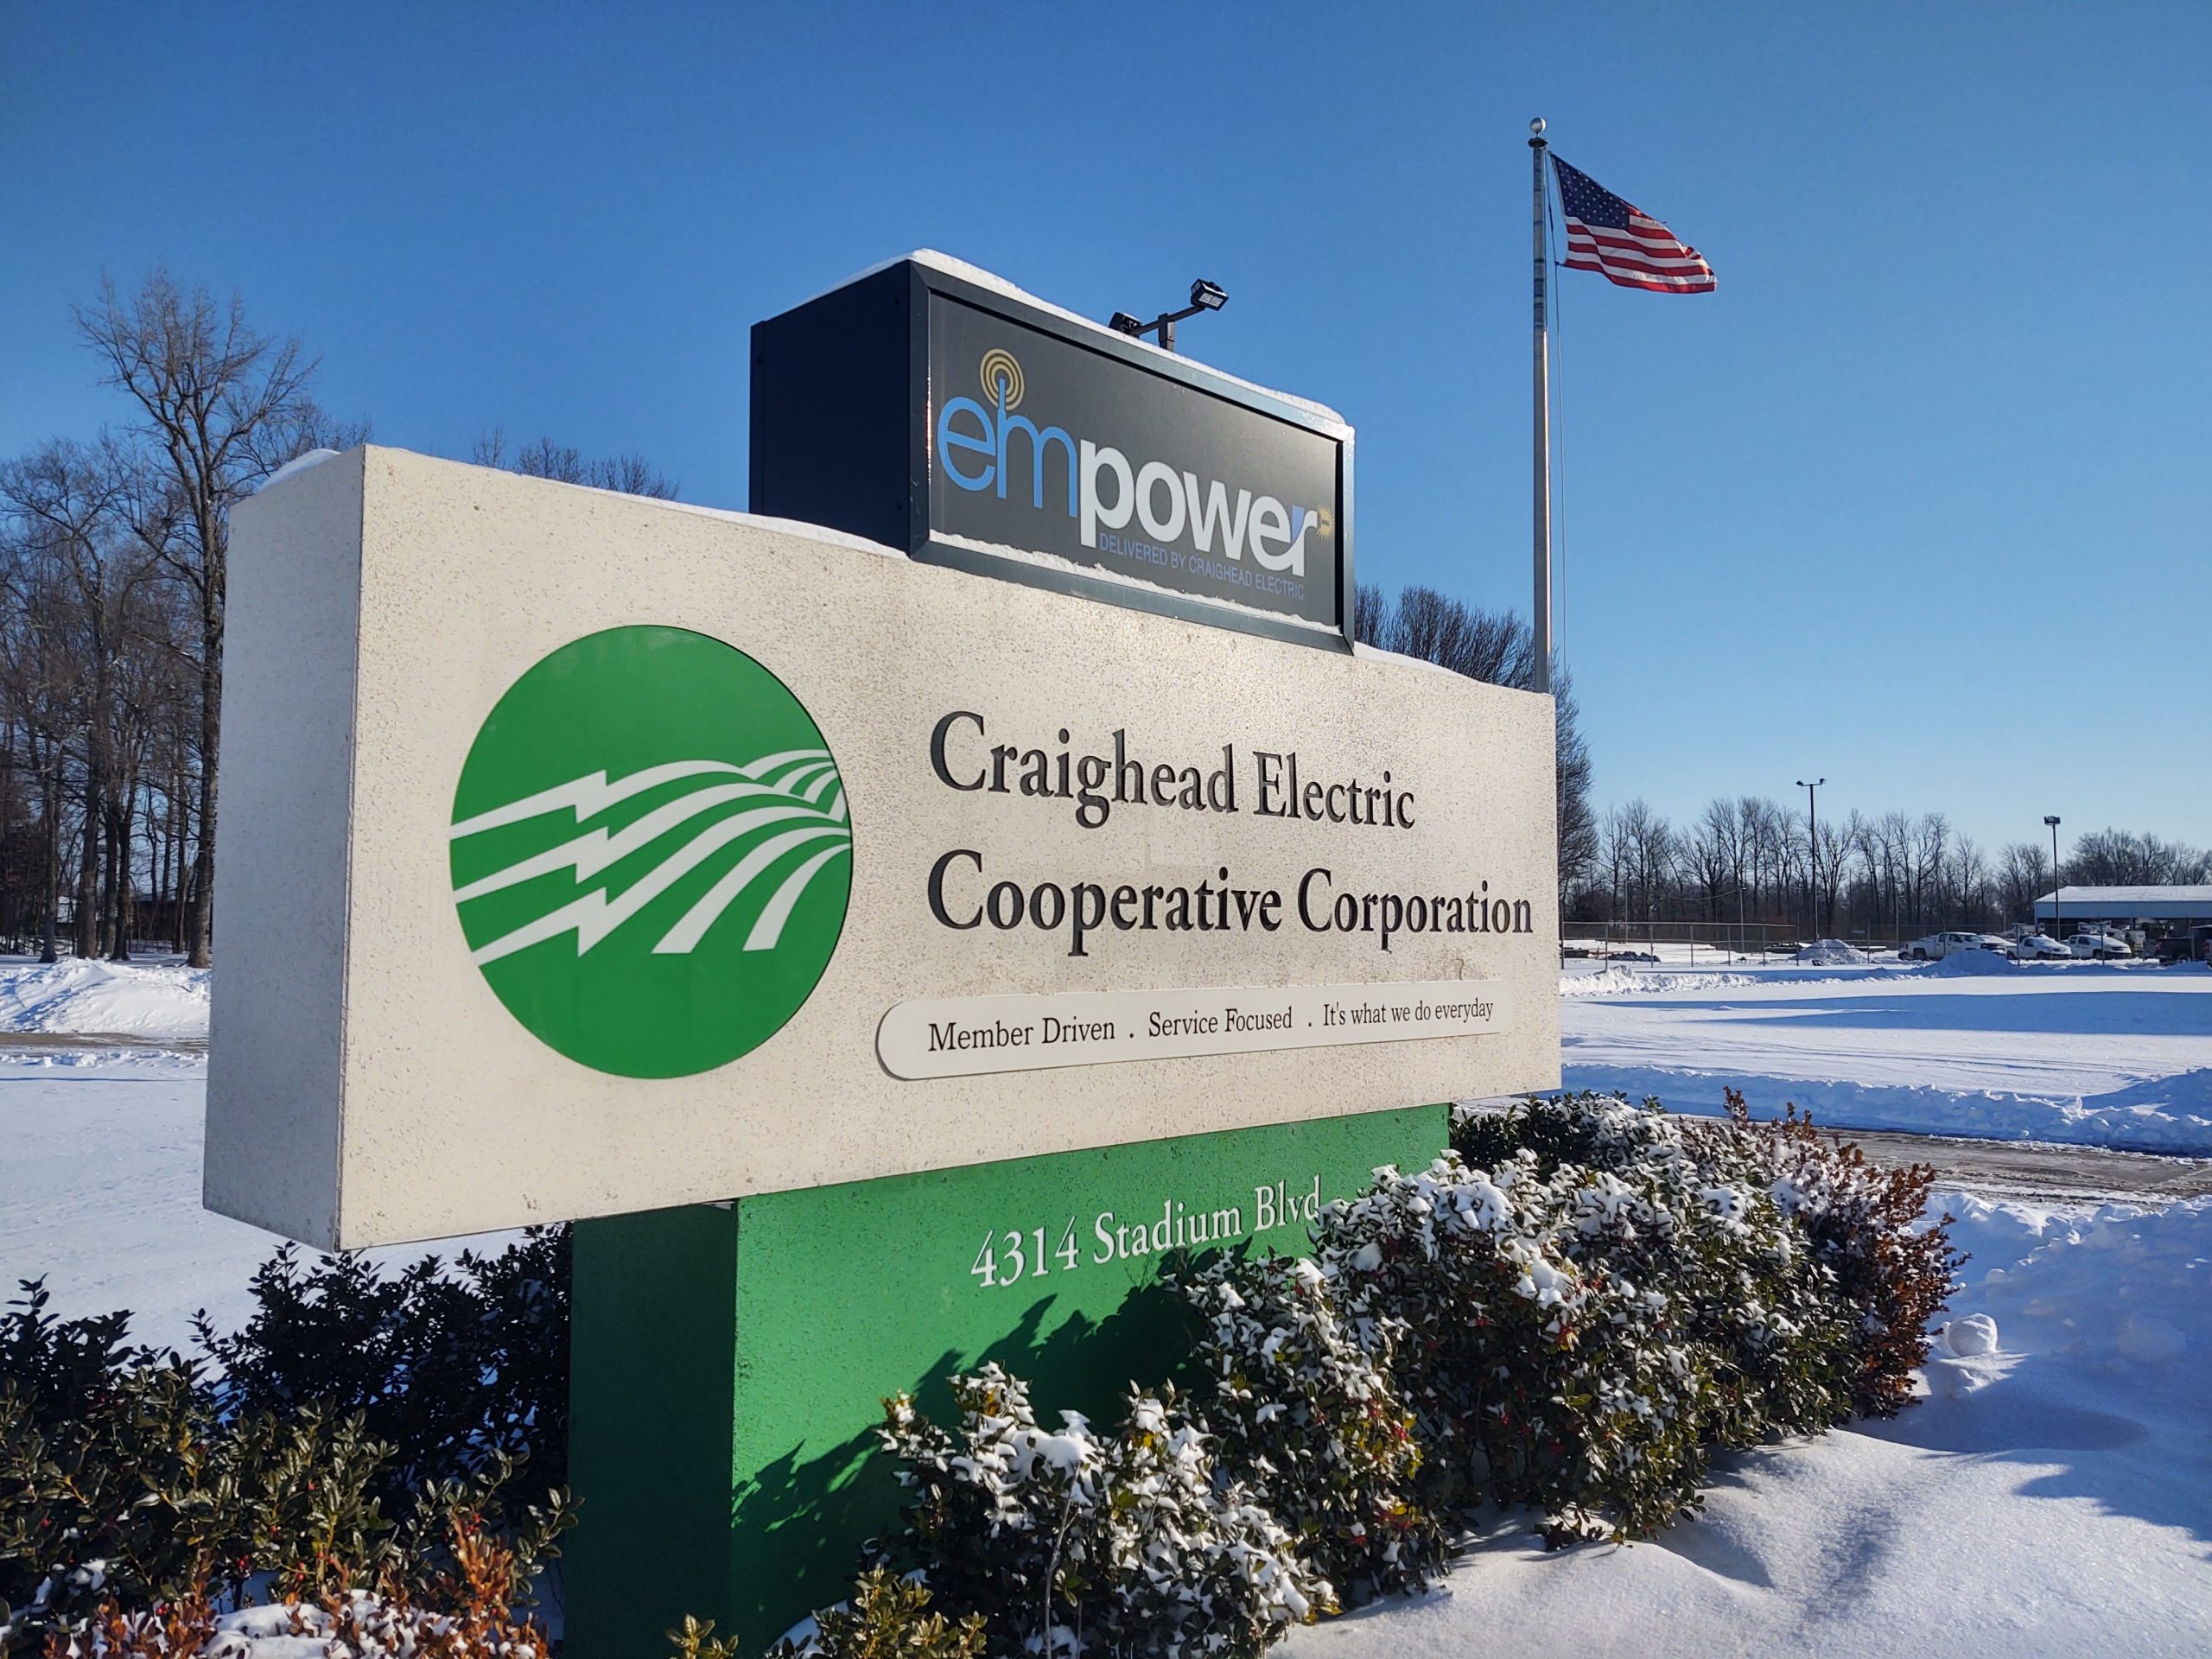 Higher electric bills expected due to cold weather